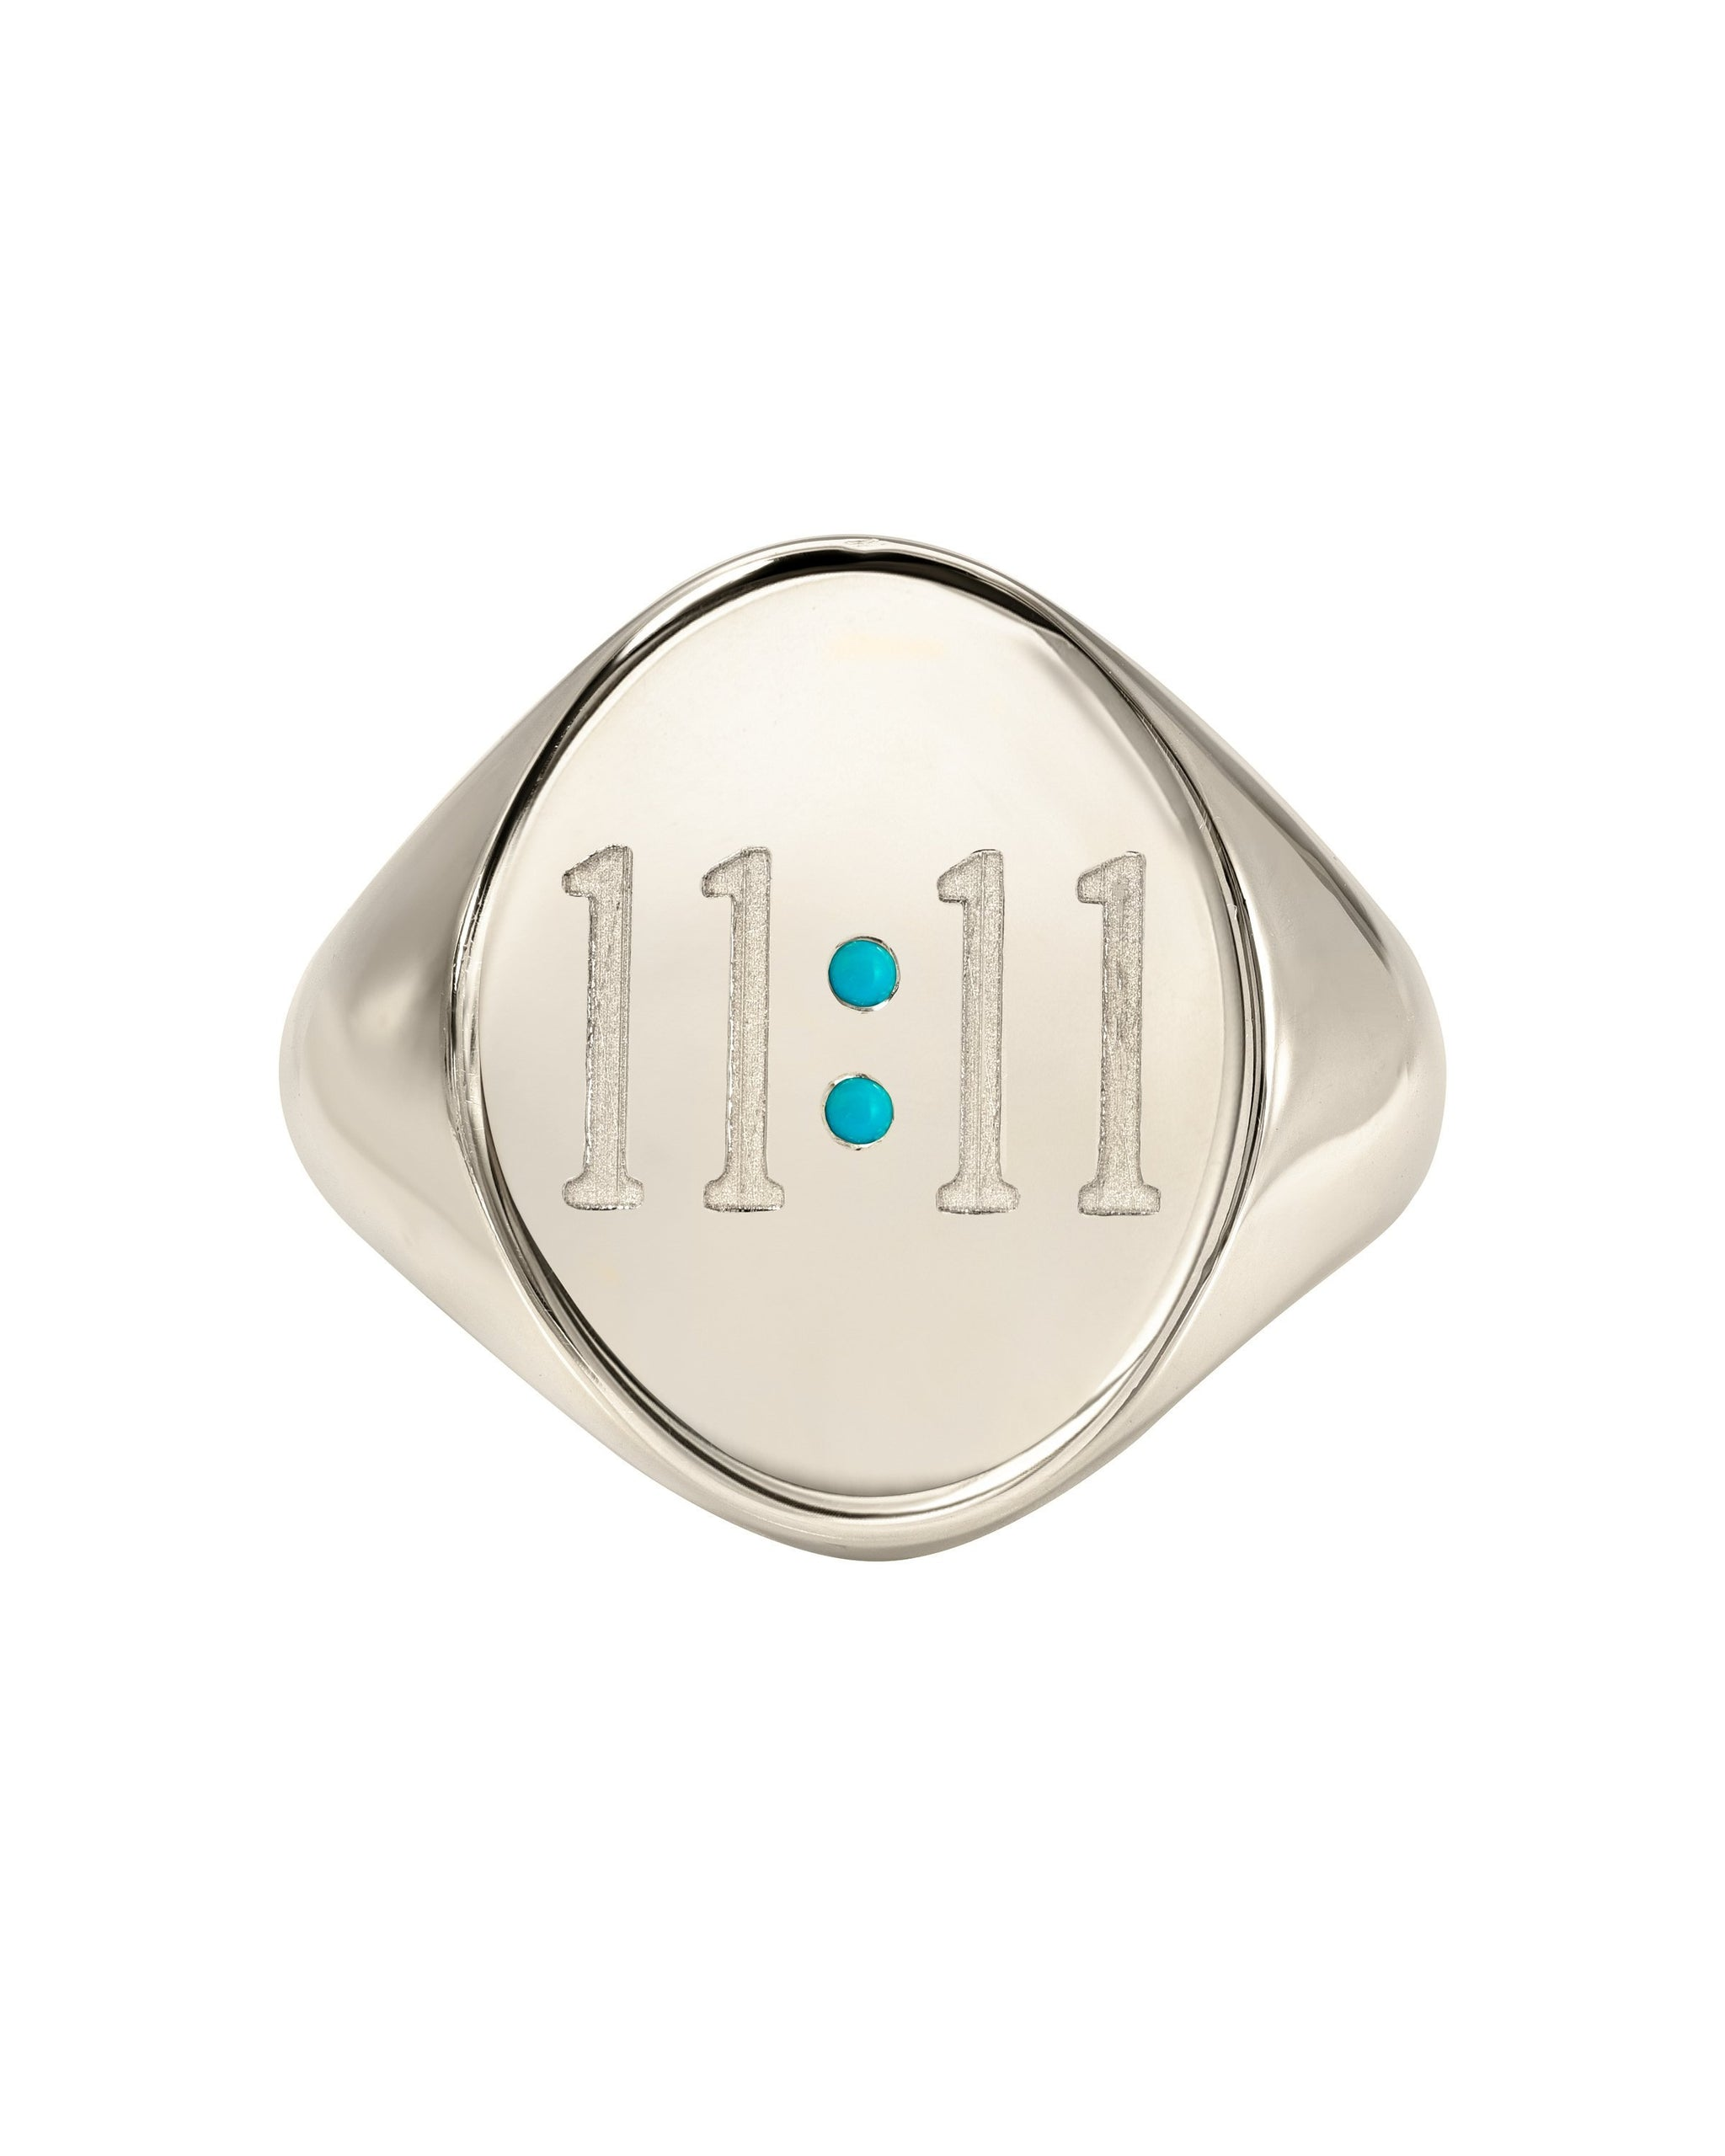 11:11 RING - TURQUOISE + TOBACCO